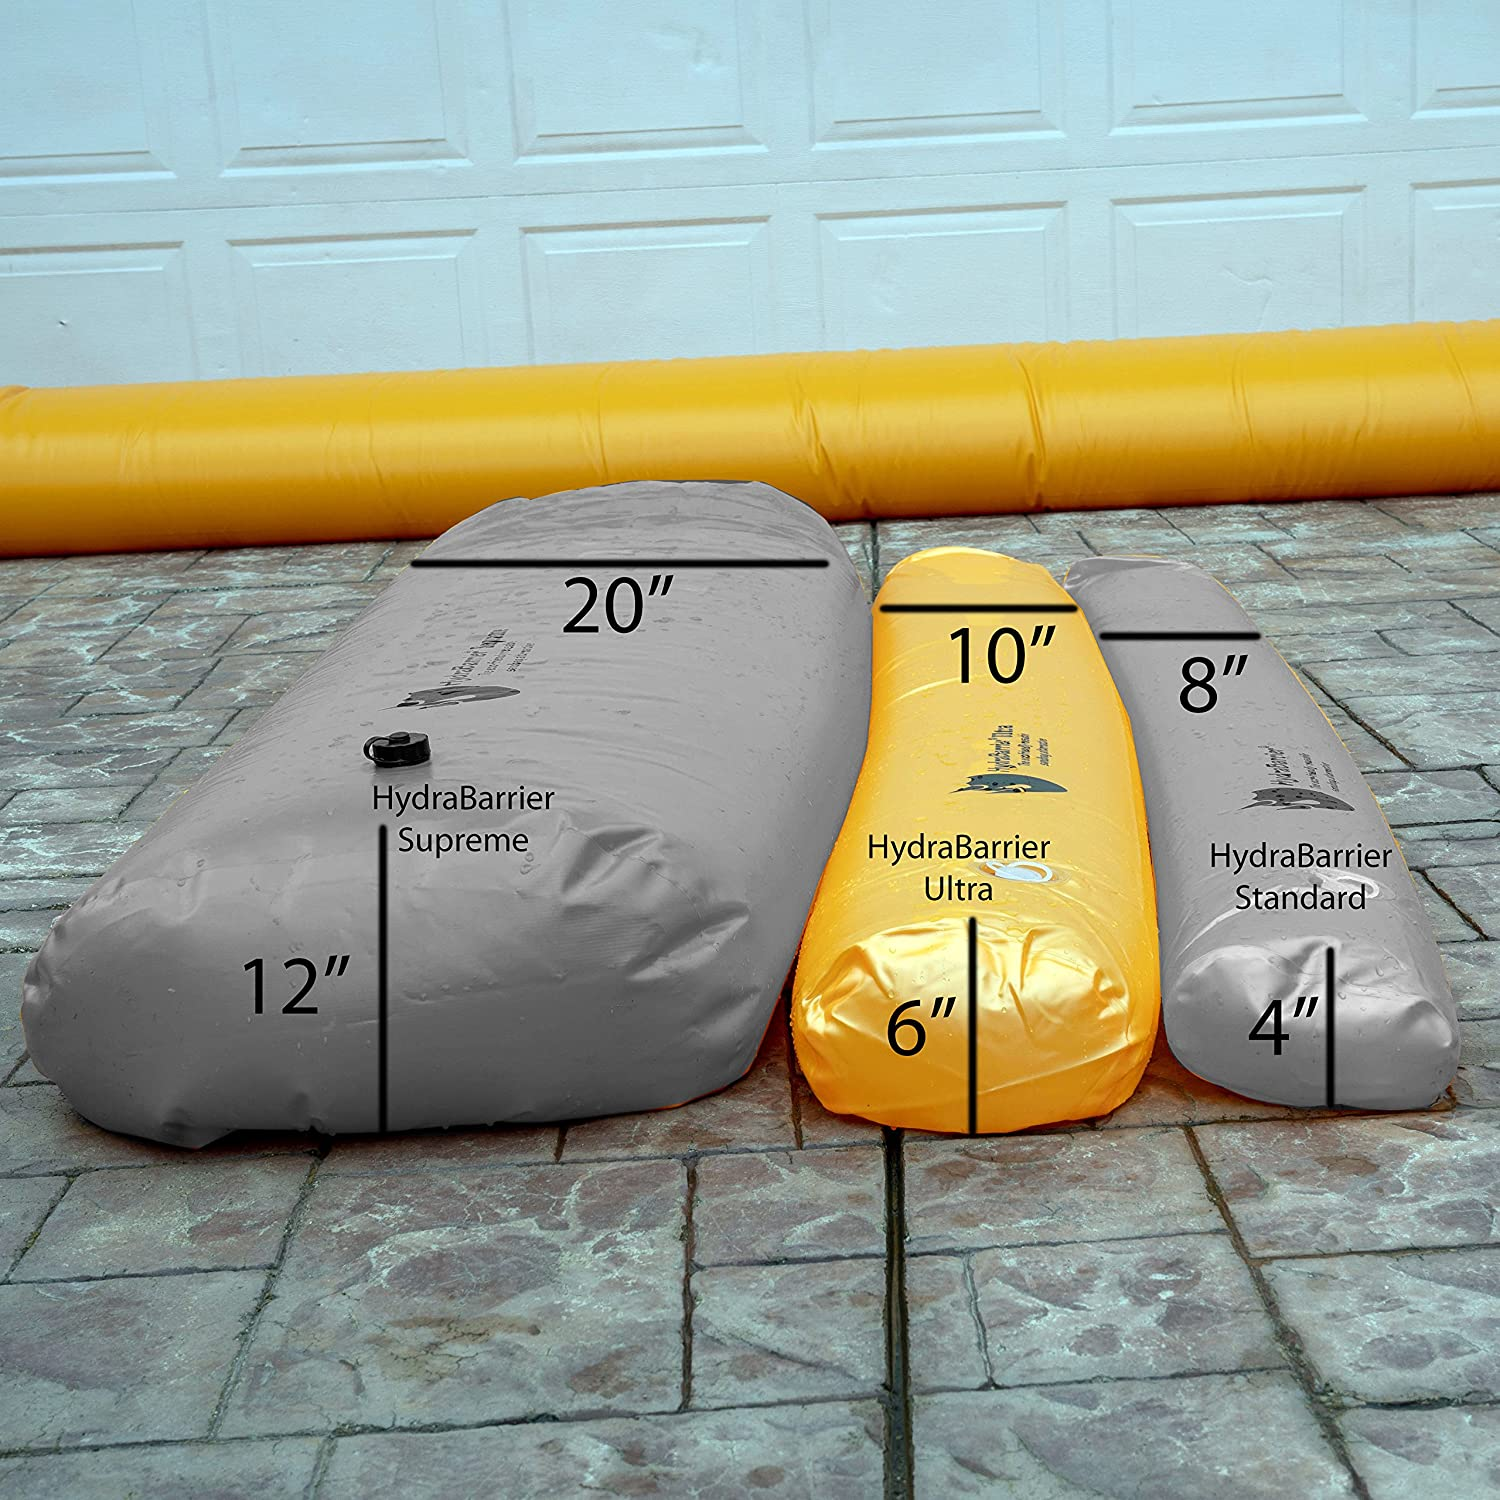 Re-usable and Eco-friendly Best Sandbag Alternative Hydrabarrier Ultra 12 Foot Length 6 Inch Height - Water Diversion Tubes That Are the Lightweight Single Unit